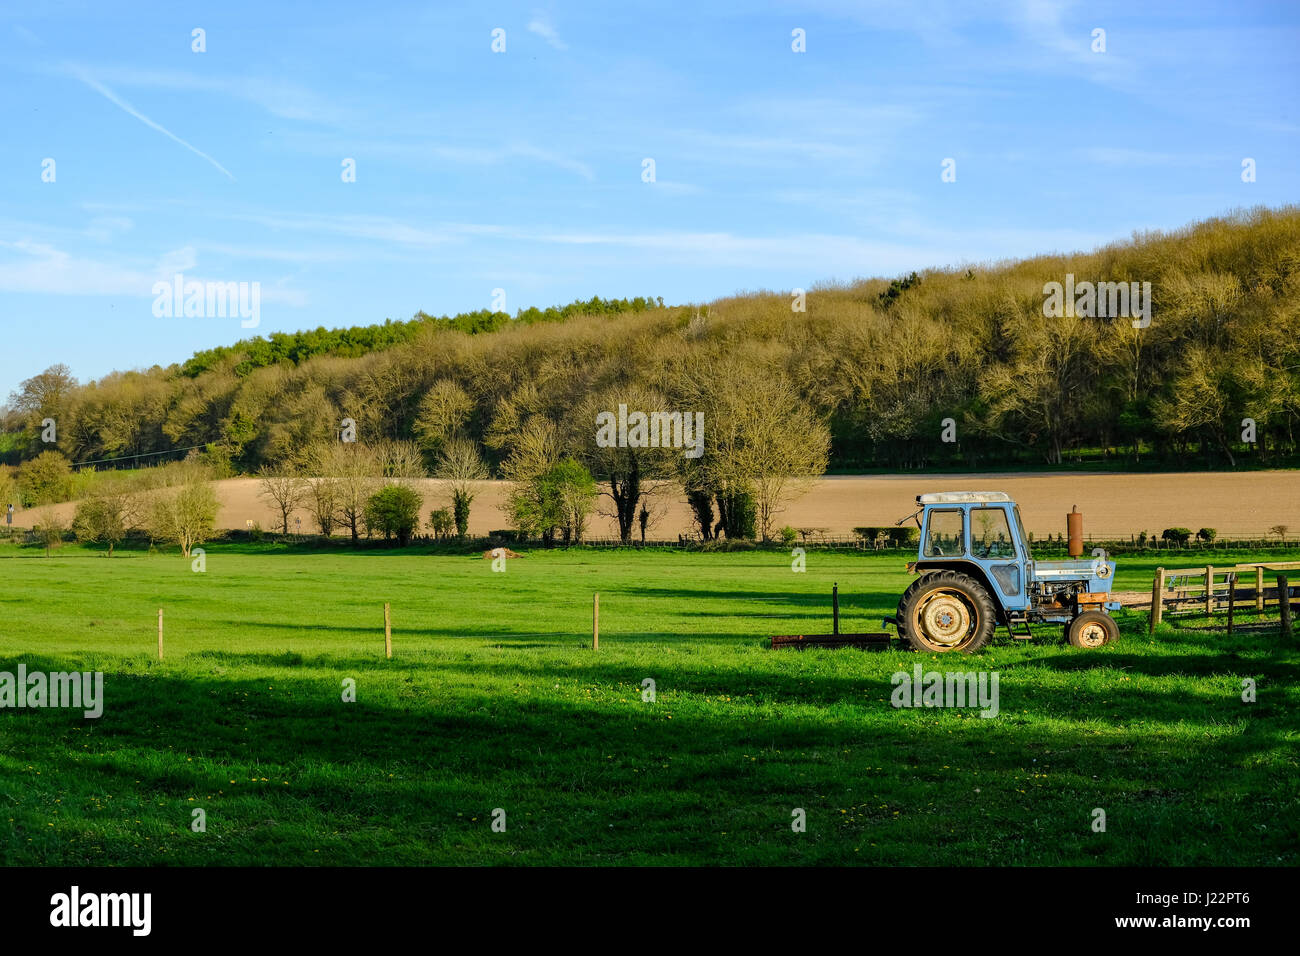 Tractor in the English countryside. - Stock Image